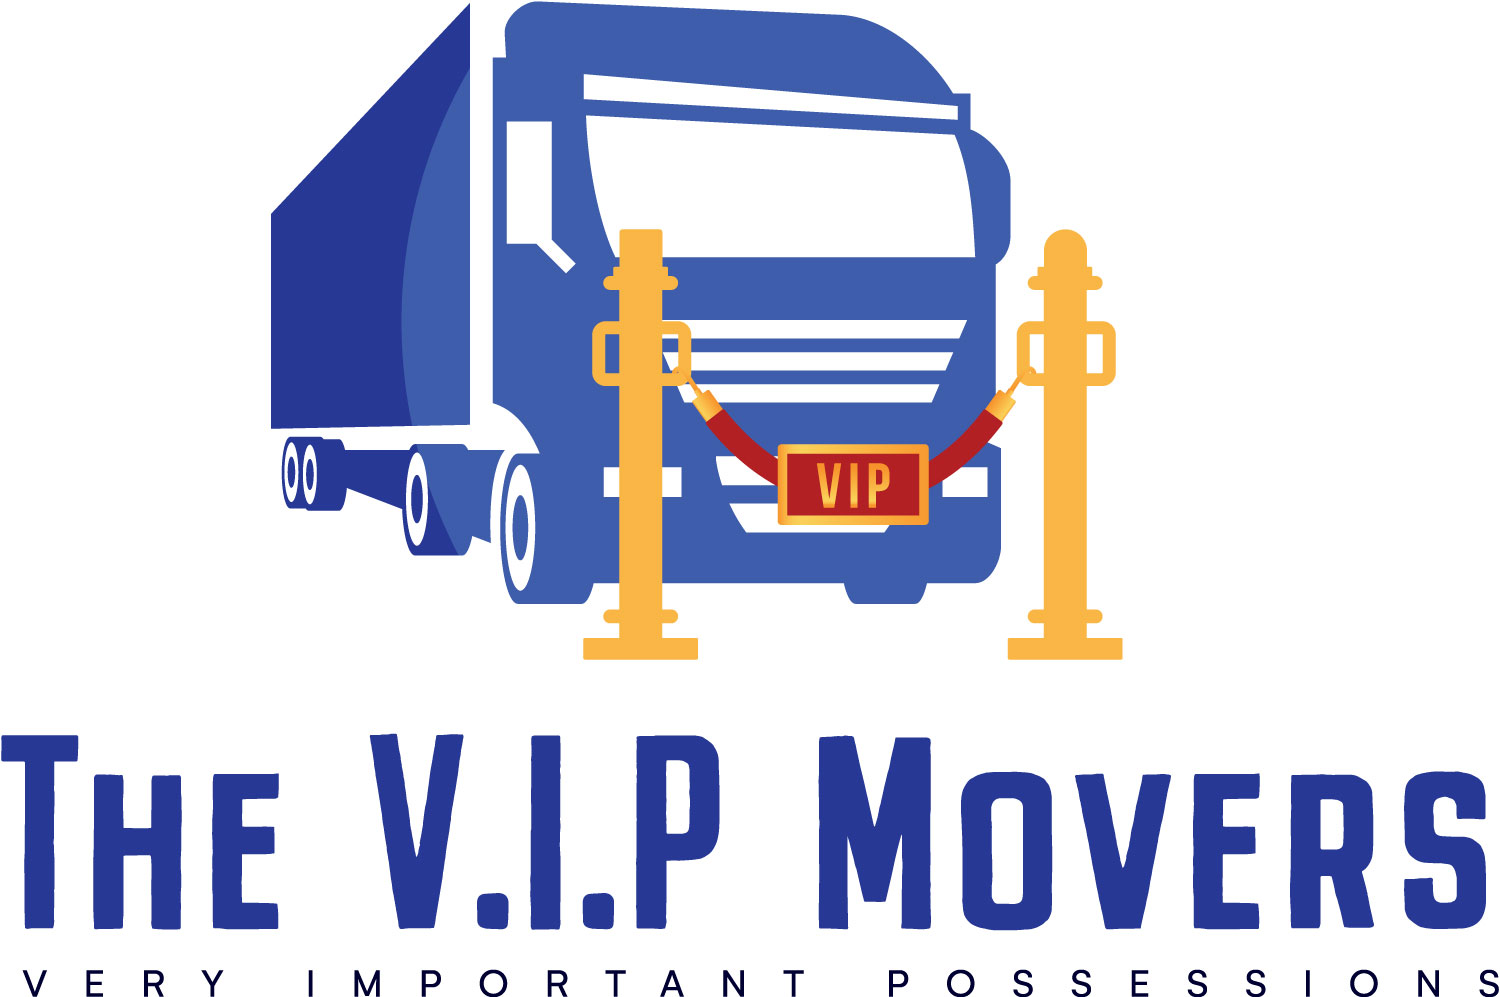 The VIP Movers LLC